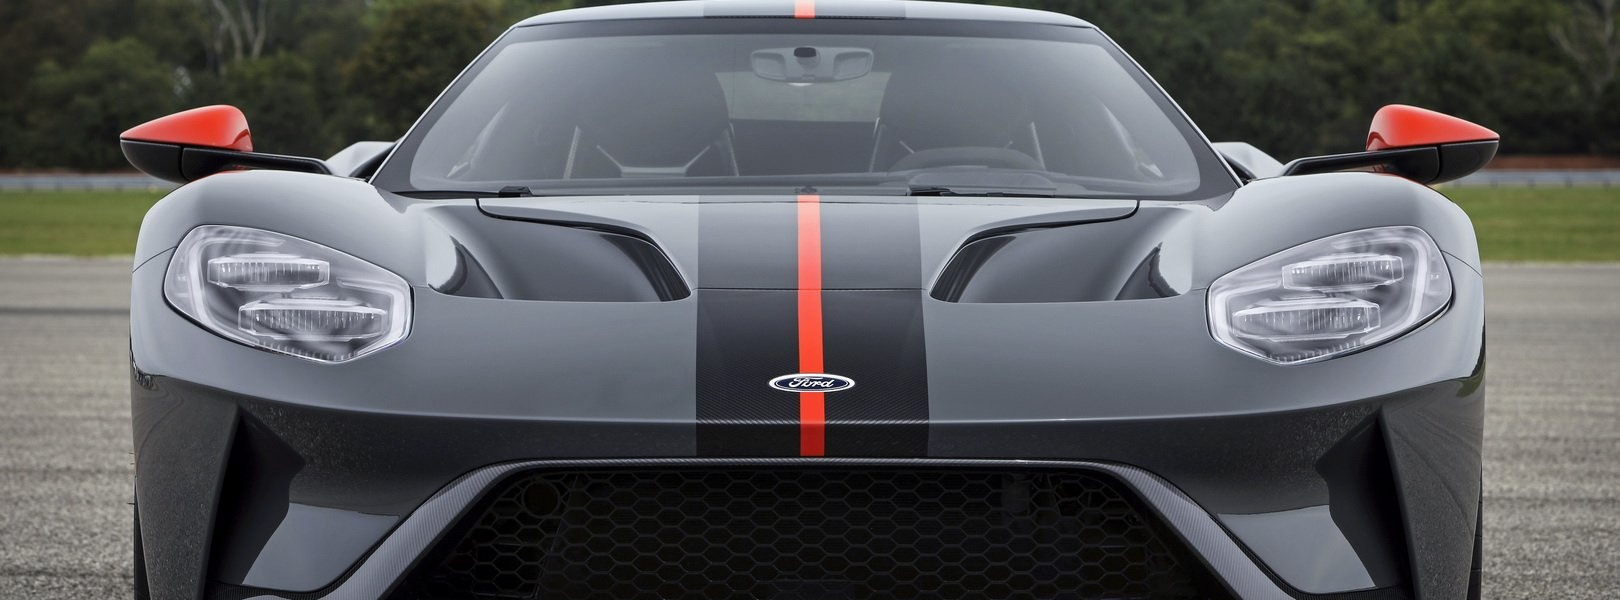 fcfaa392-2019-ford-gt-carbon-series-2.jpg